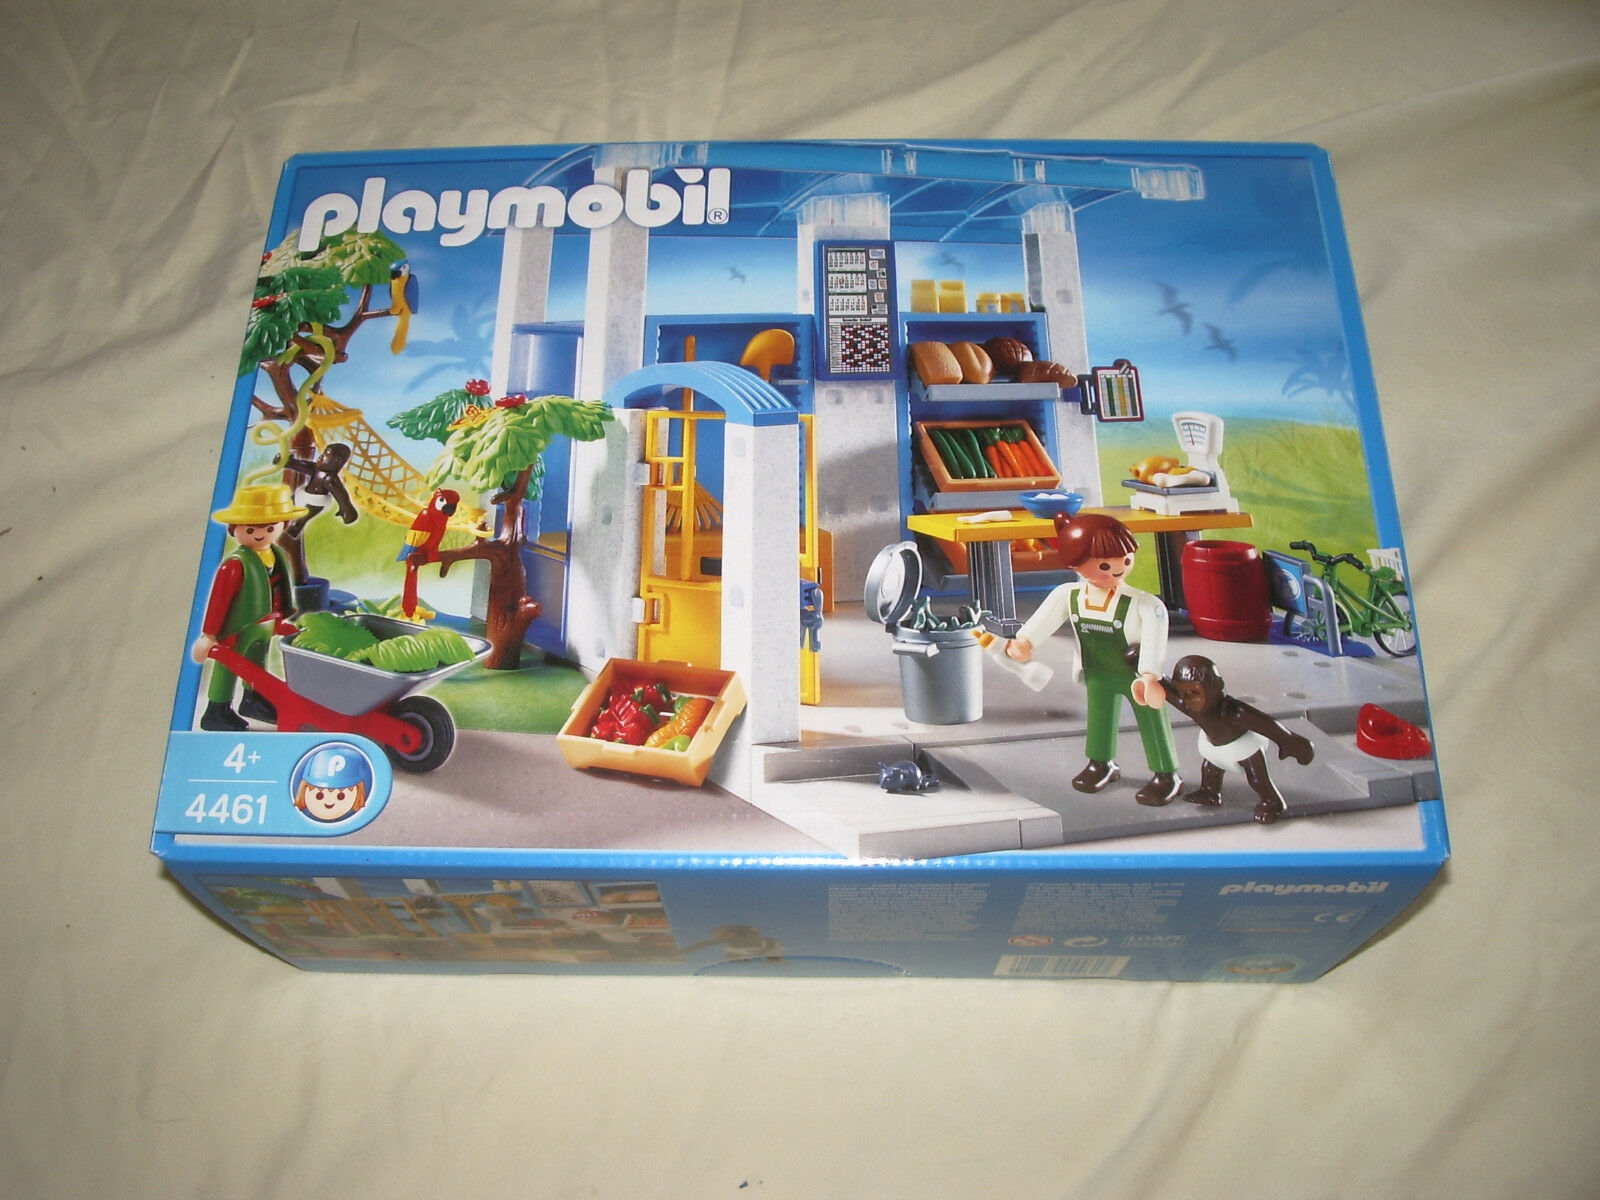 PLAYMOBIL  4461 STATION LOCAL scatola DE NOURRITURE SERIE ZOO NEUF  confortevole